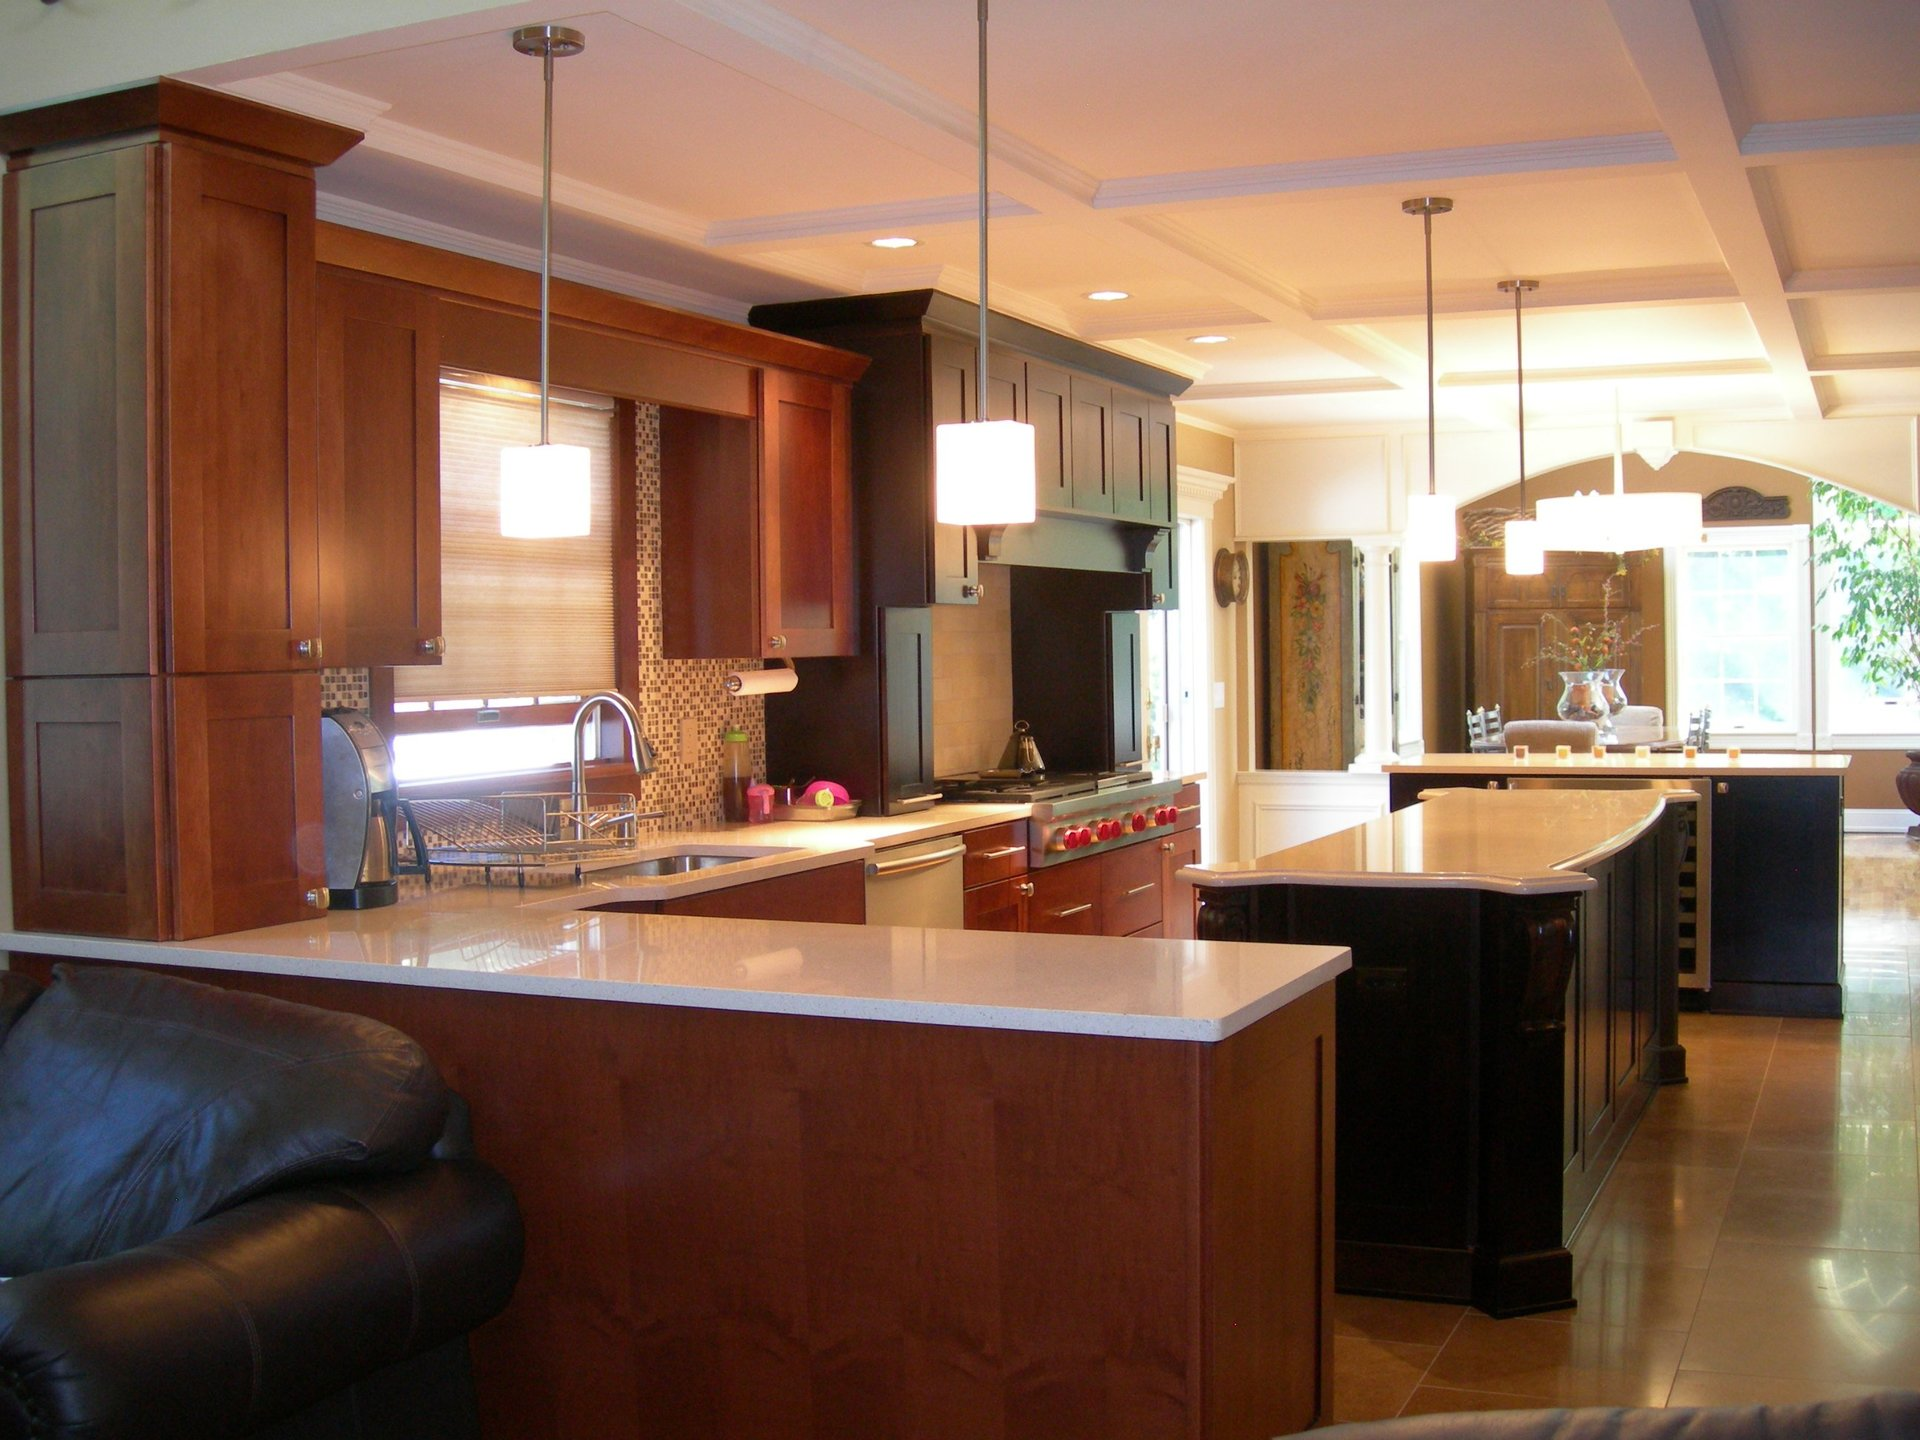 advantages countertops kitchen countertop cabinets and cabinet laminate have